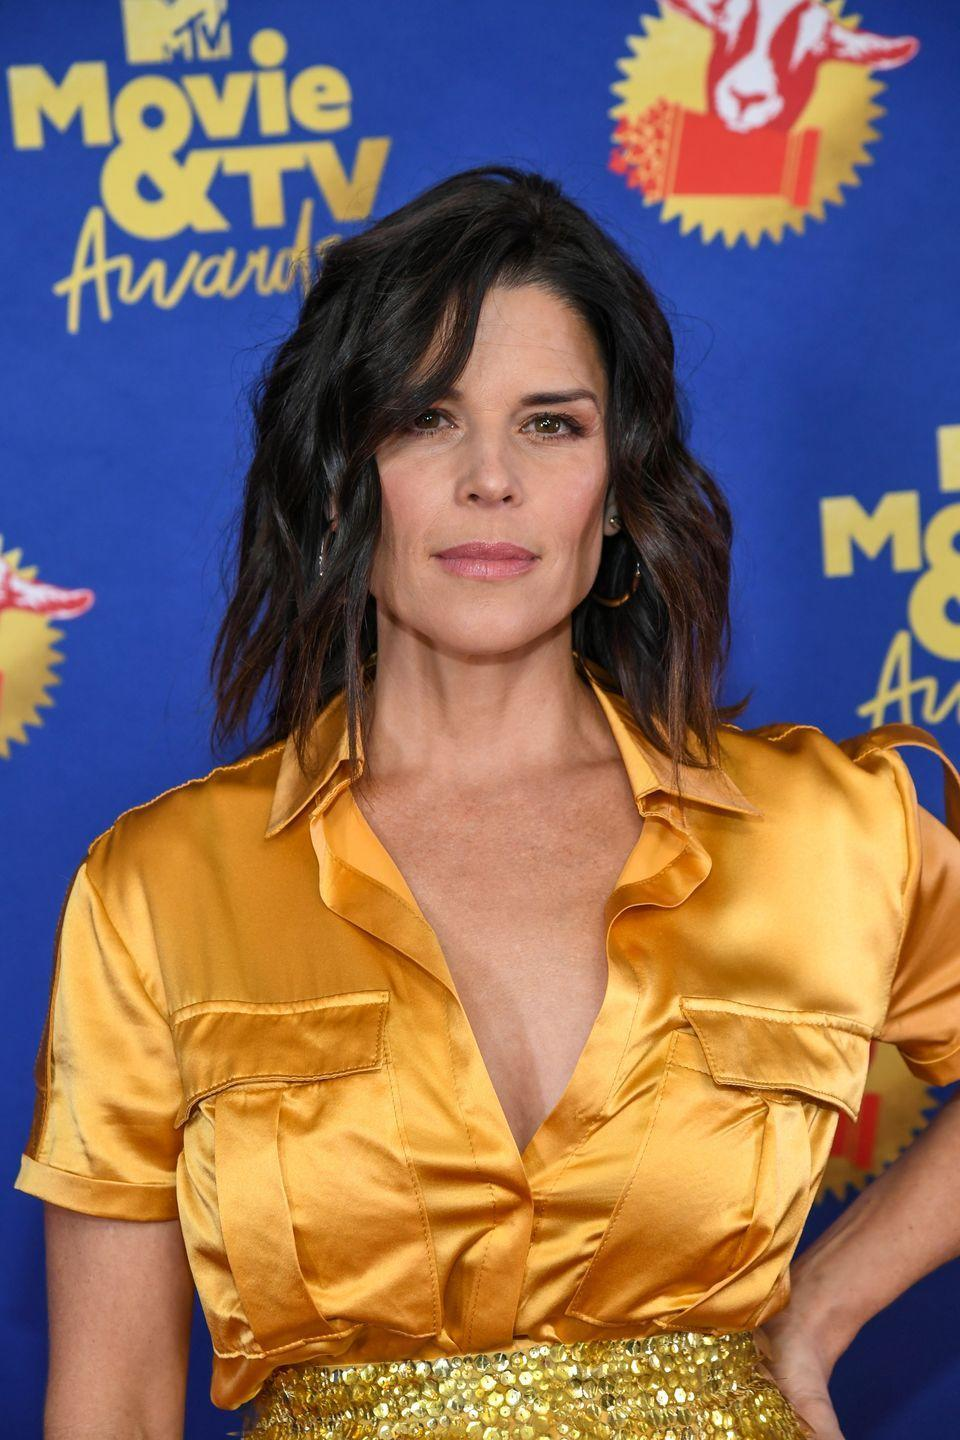 <p>In 2021, Campbell has become a TV guest star staple, recently starred in the film Clouds, as well as the TV series House of Cards, and is set to reprise her role as the unkillable Sidney Prescott in 2022.</p>